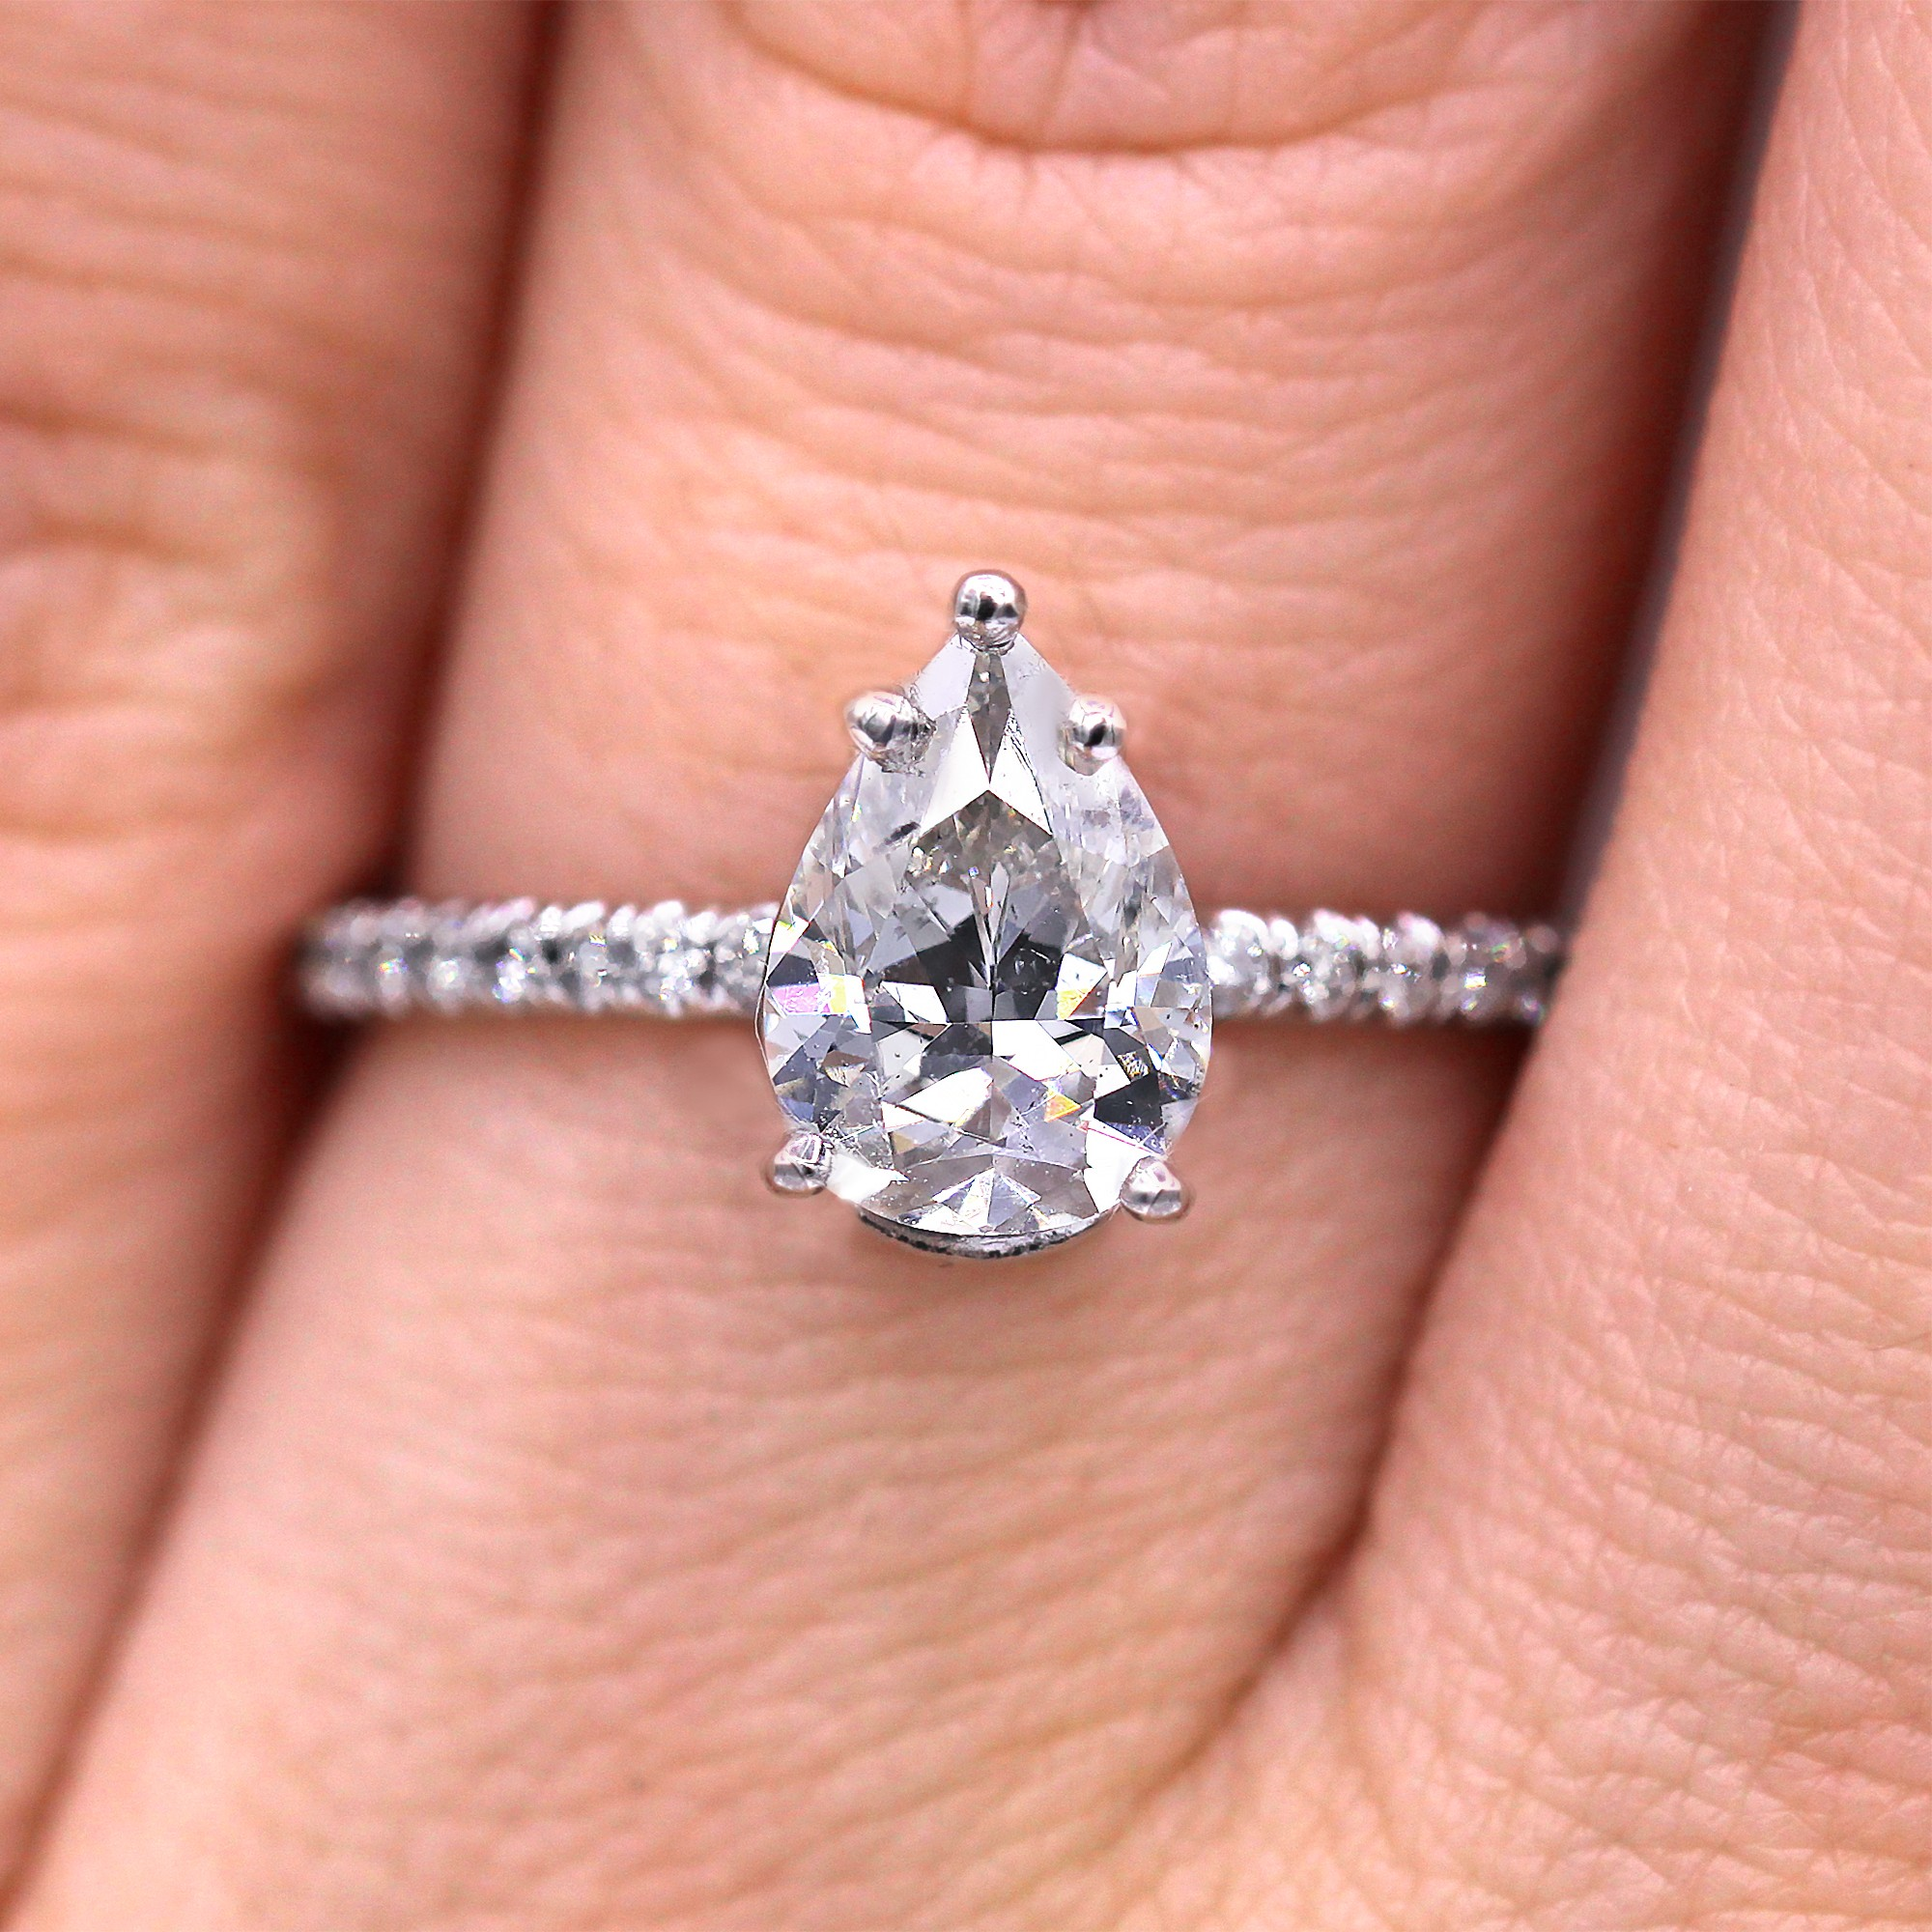 Petite and elegant pear cut diamond ring. GIA certified